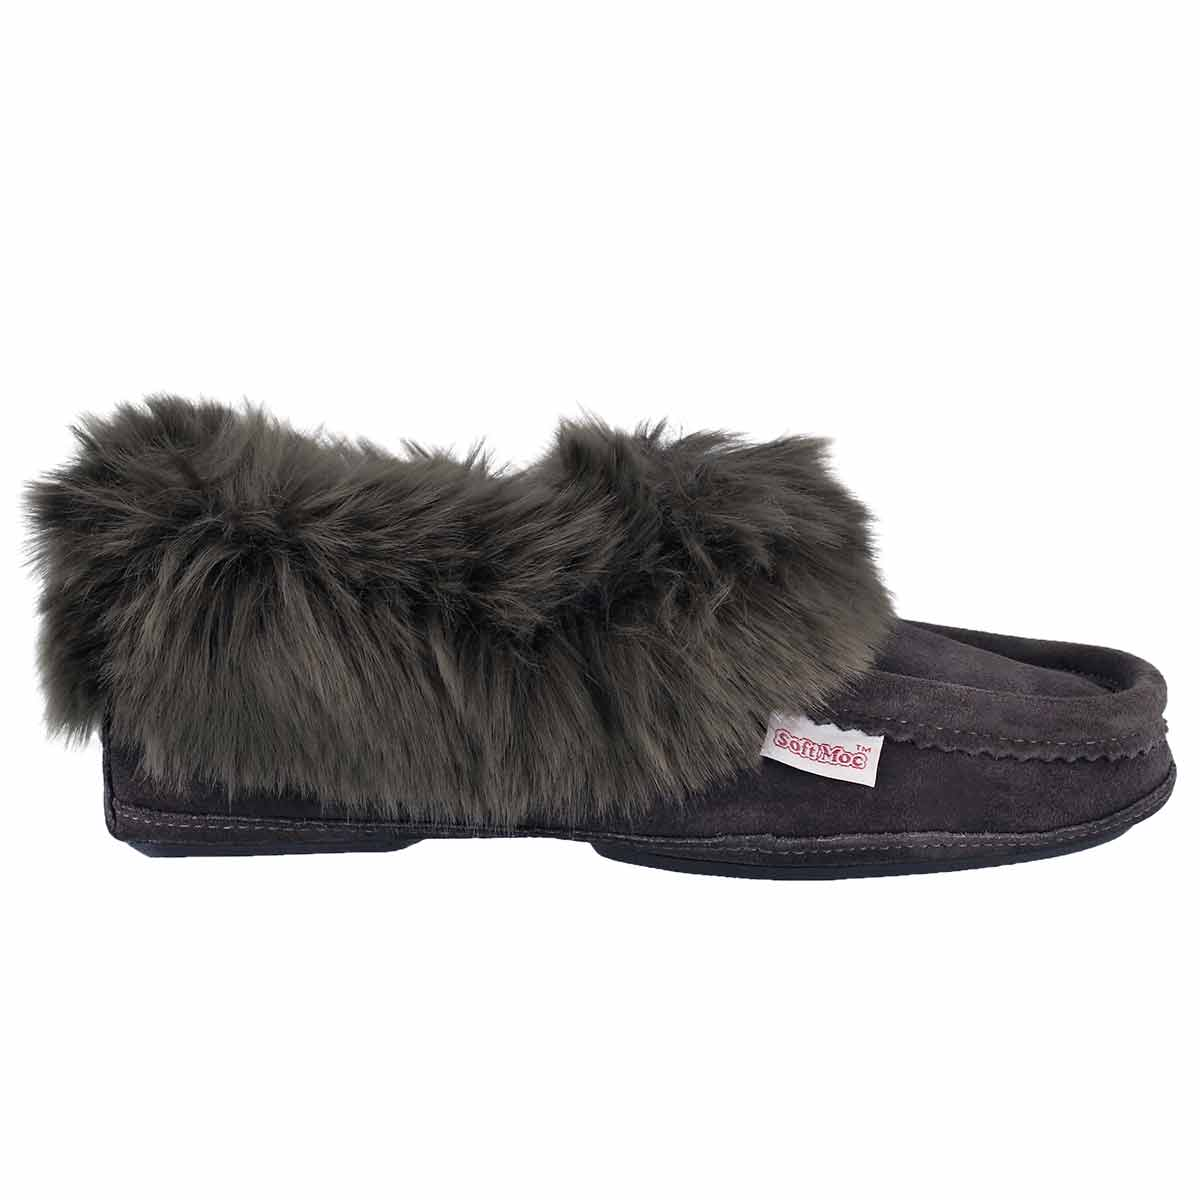 Lds Too Cute grey lined moccasin